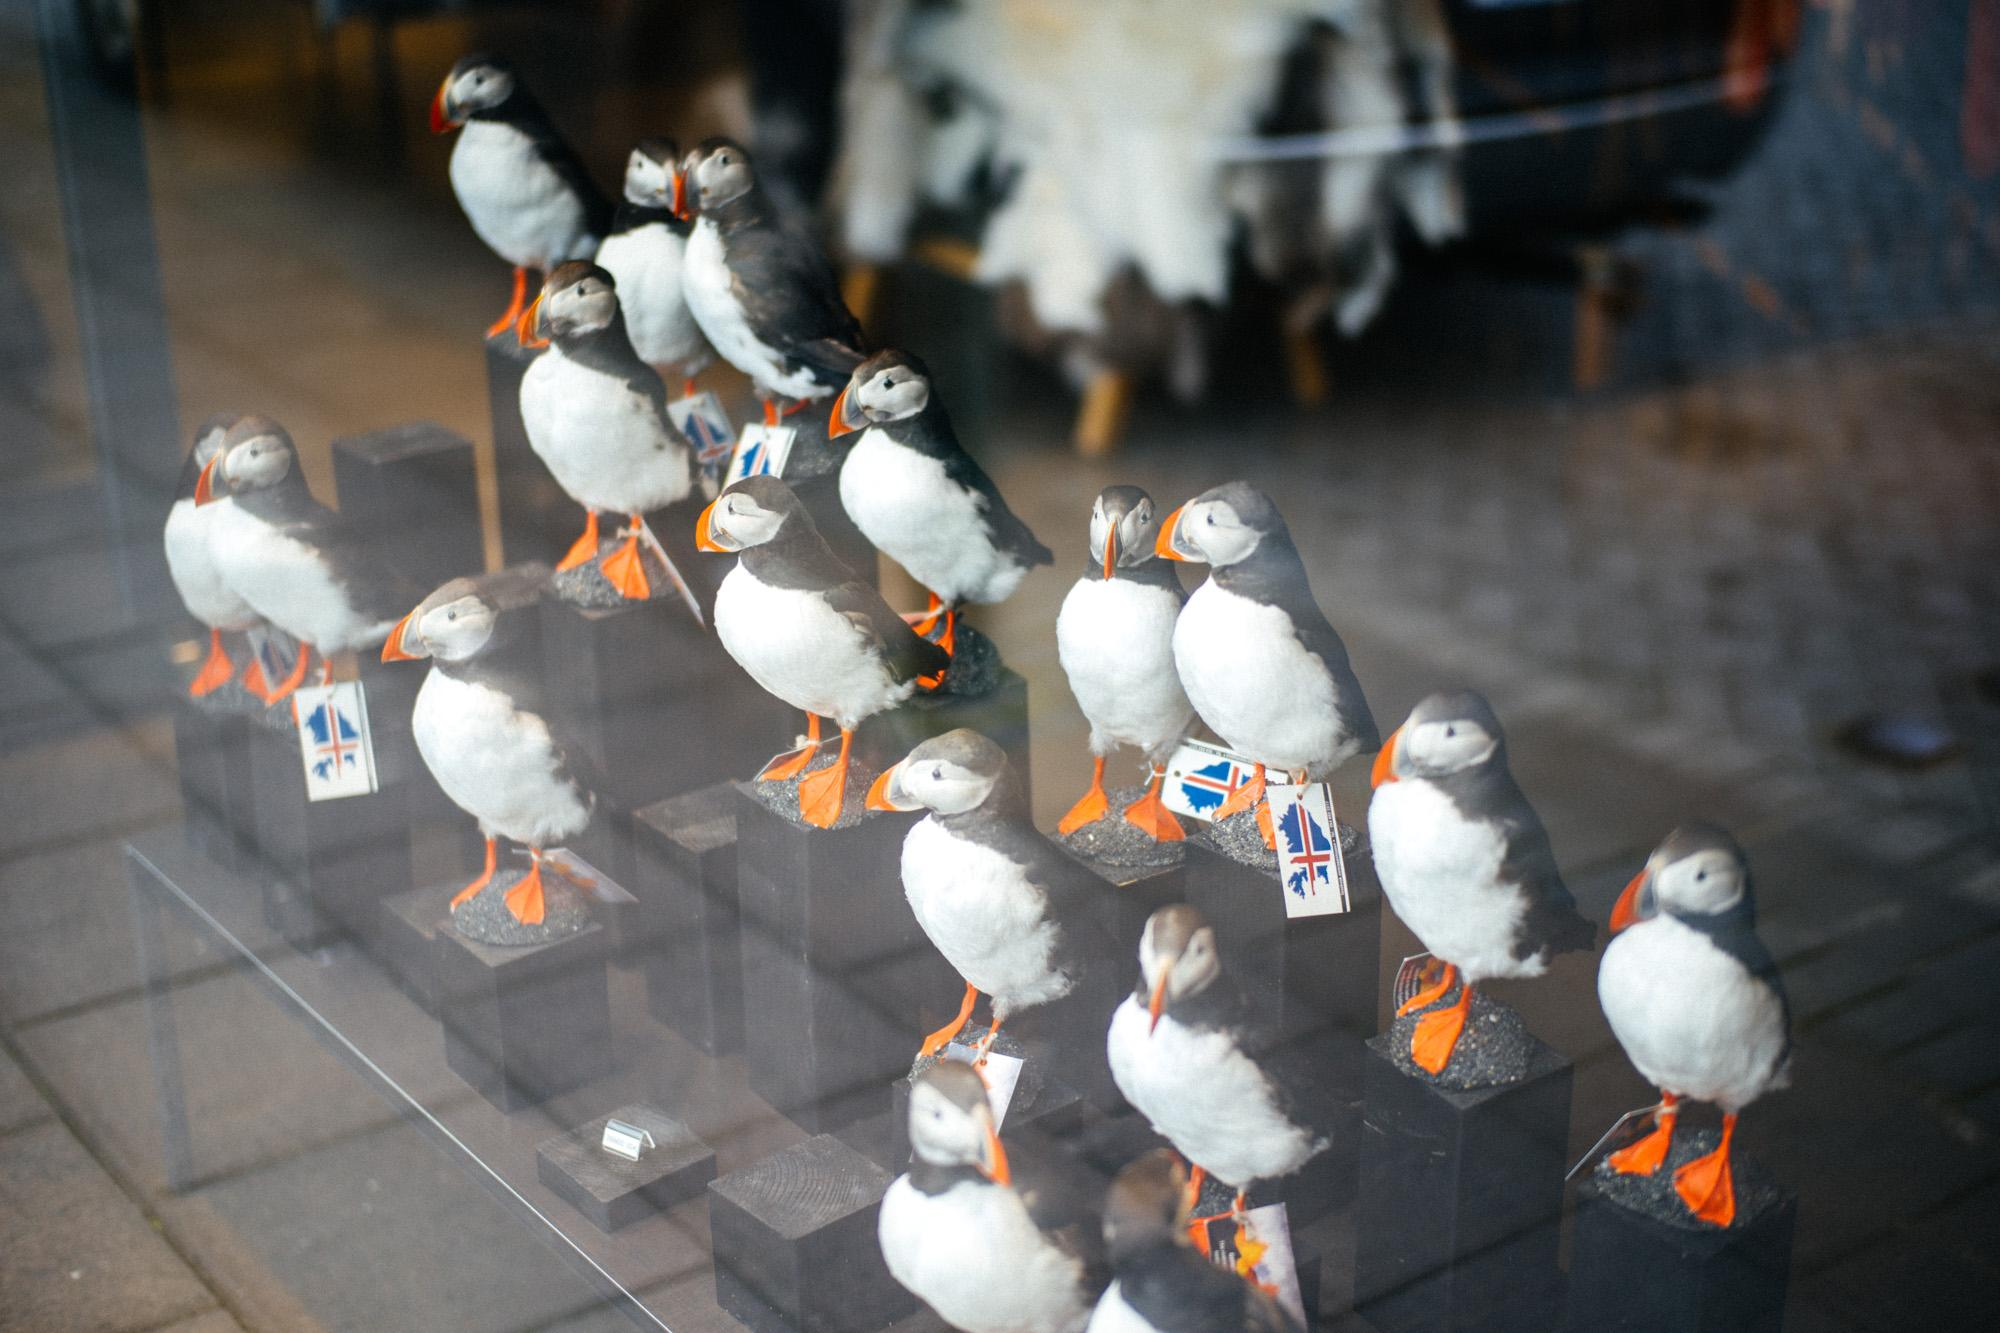 Taxidermy Puffins? WTF?